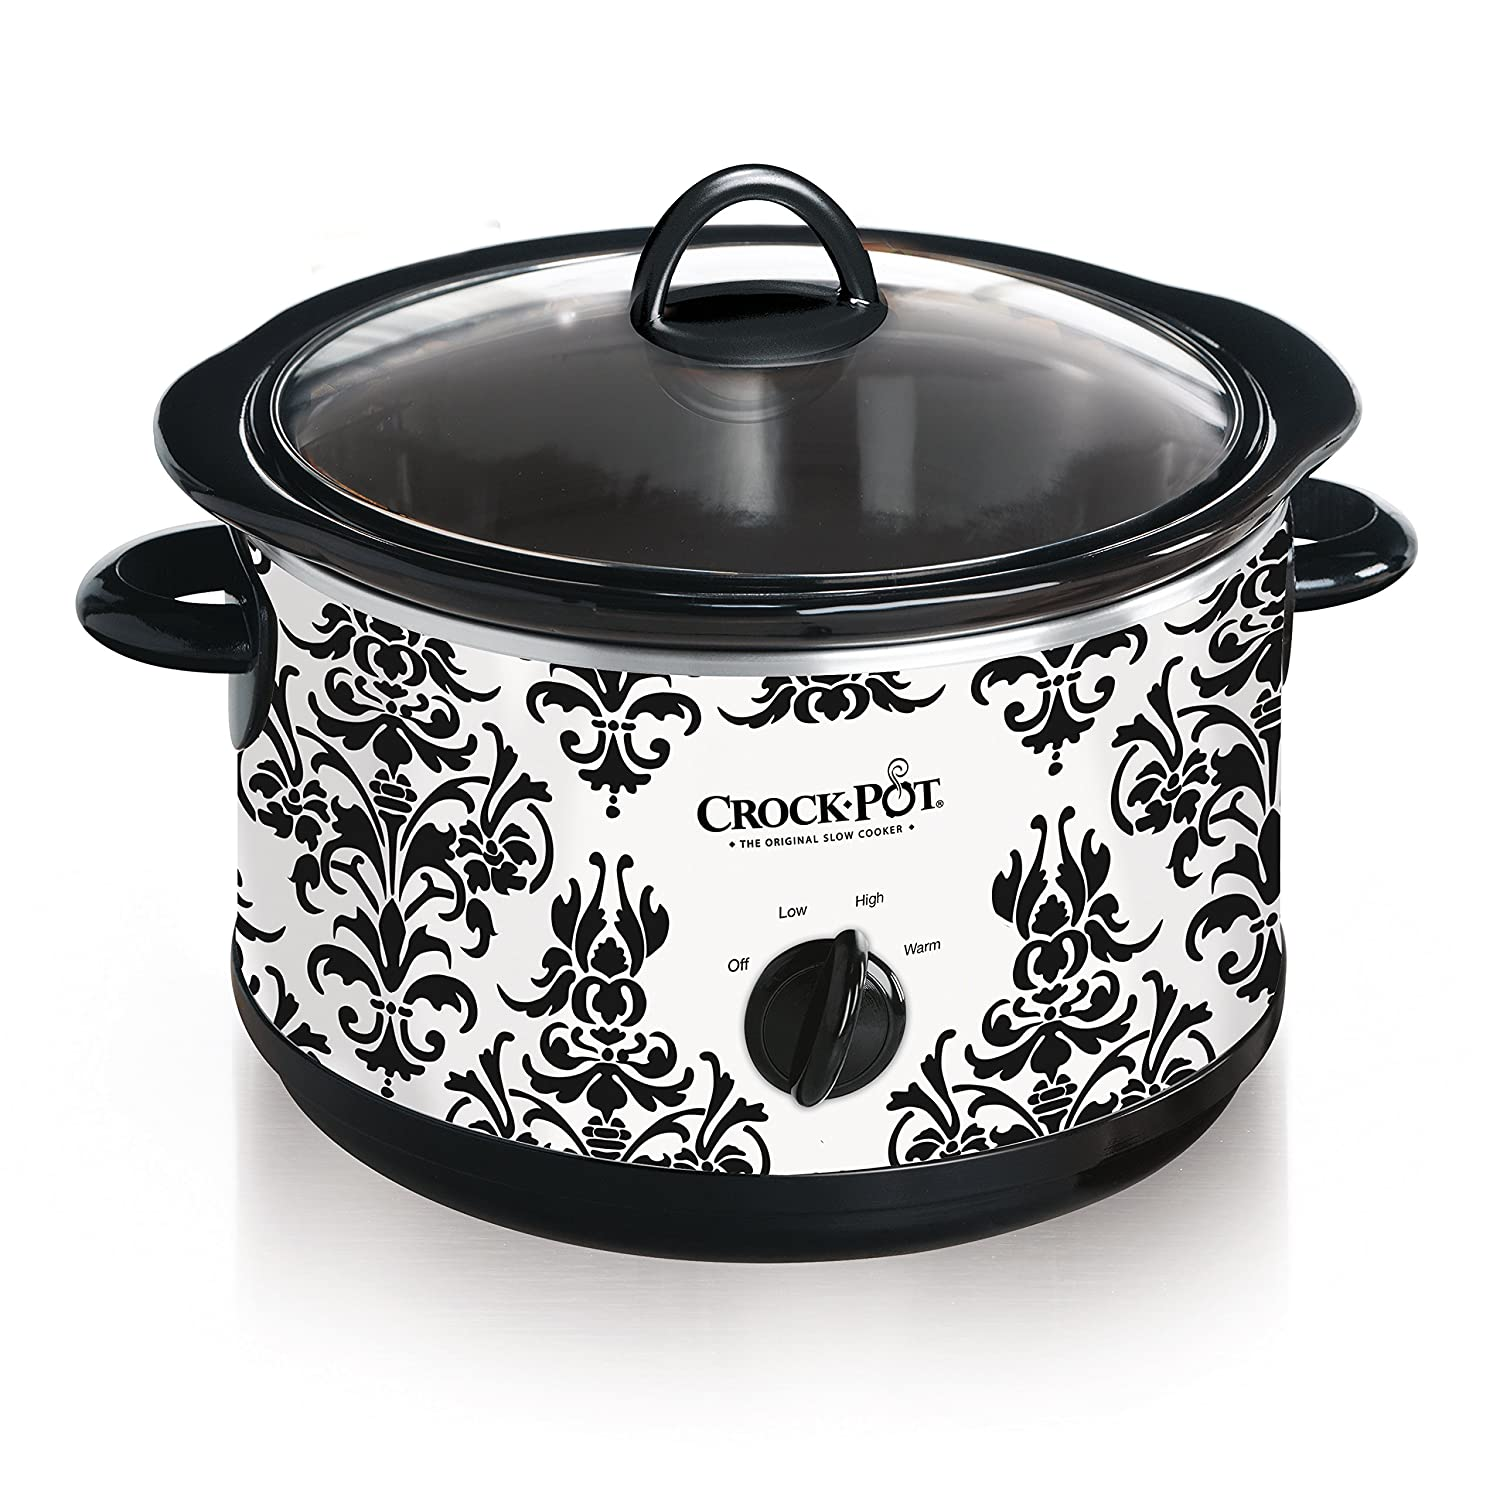 Crock-Pot 4.5-Quart Manual Slow Cooker, Damask Pattern